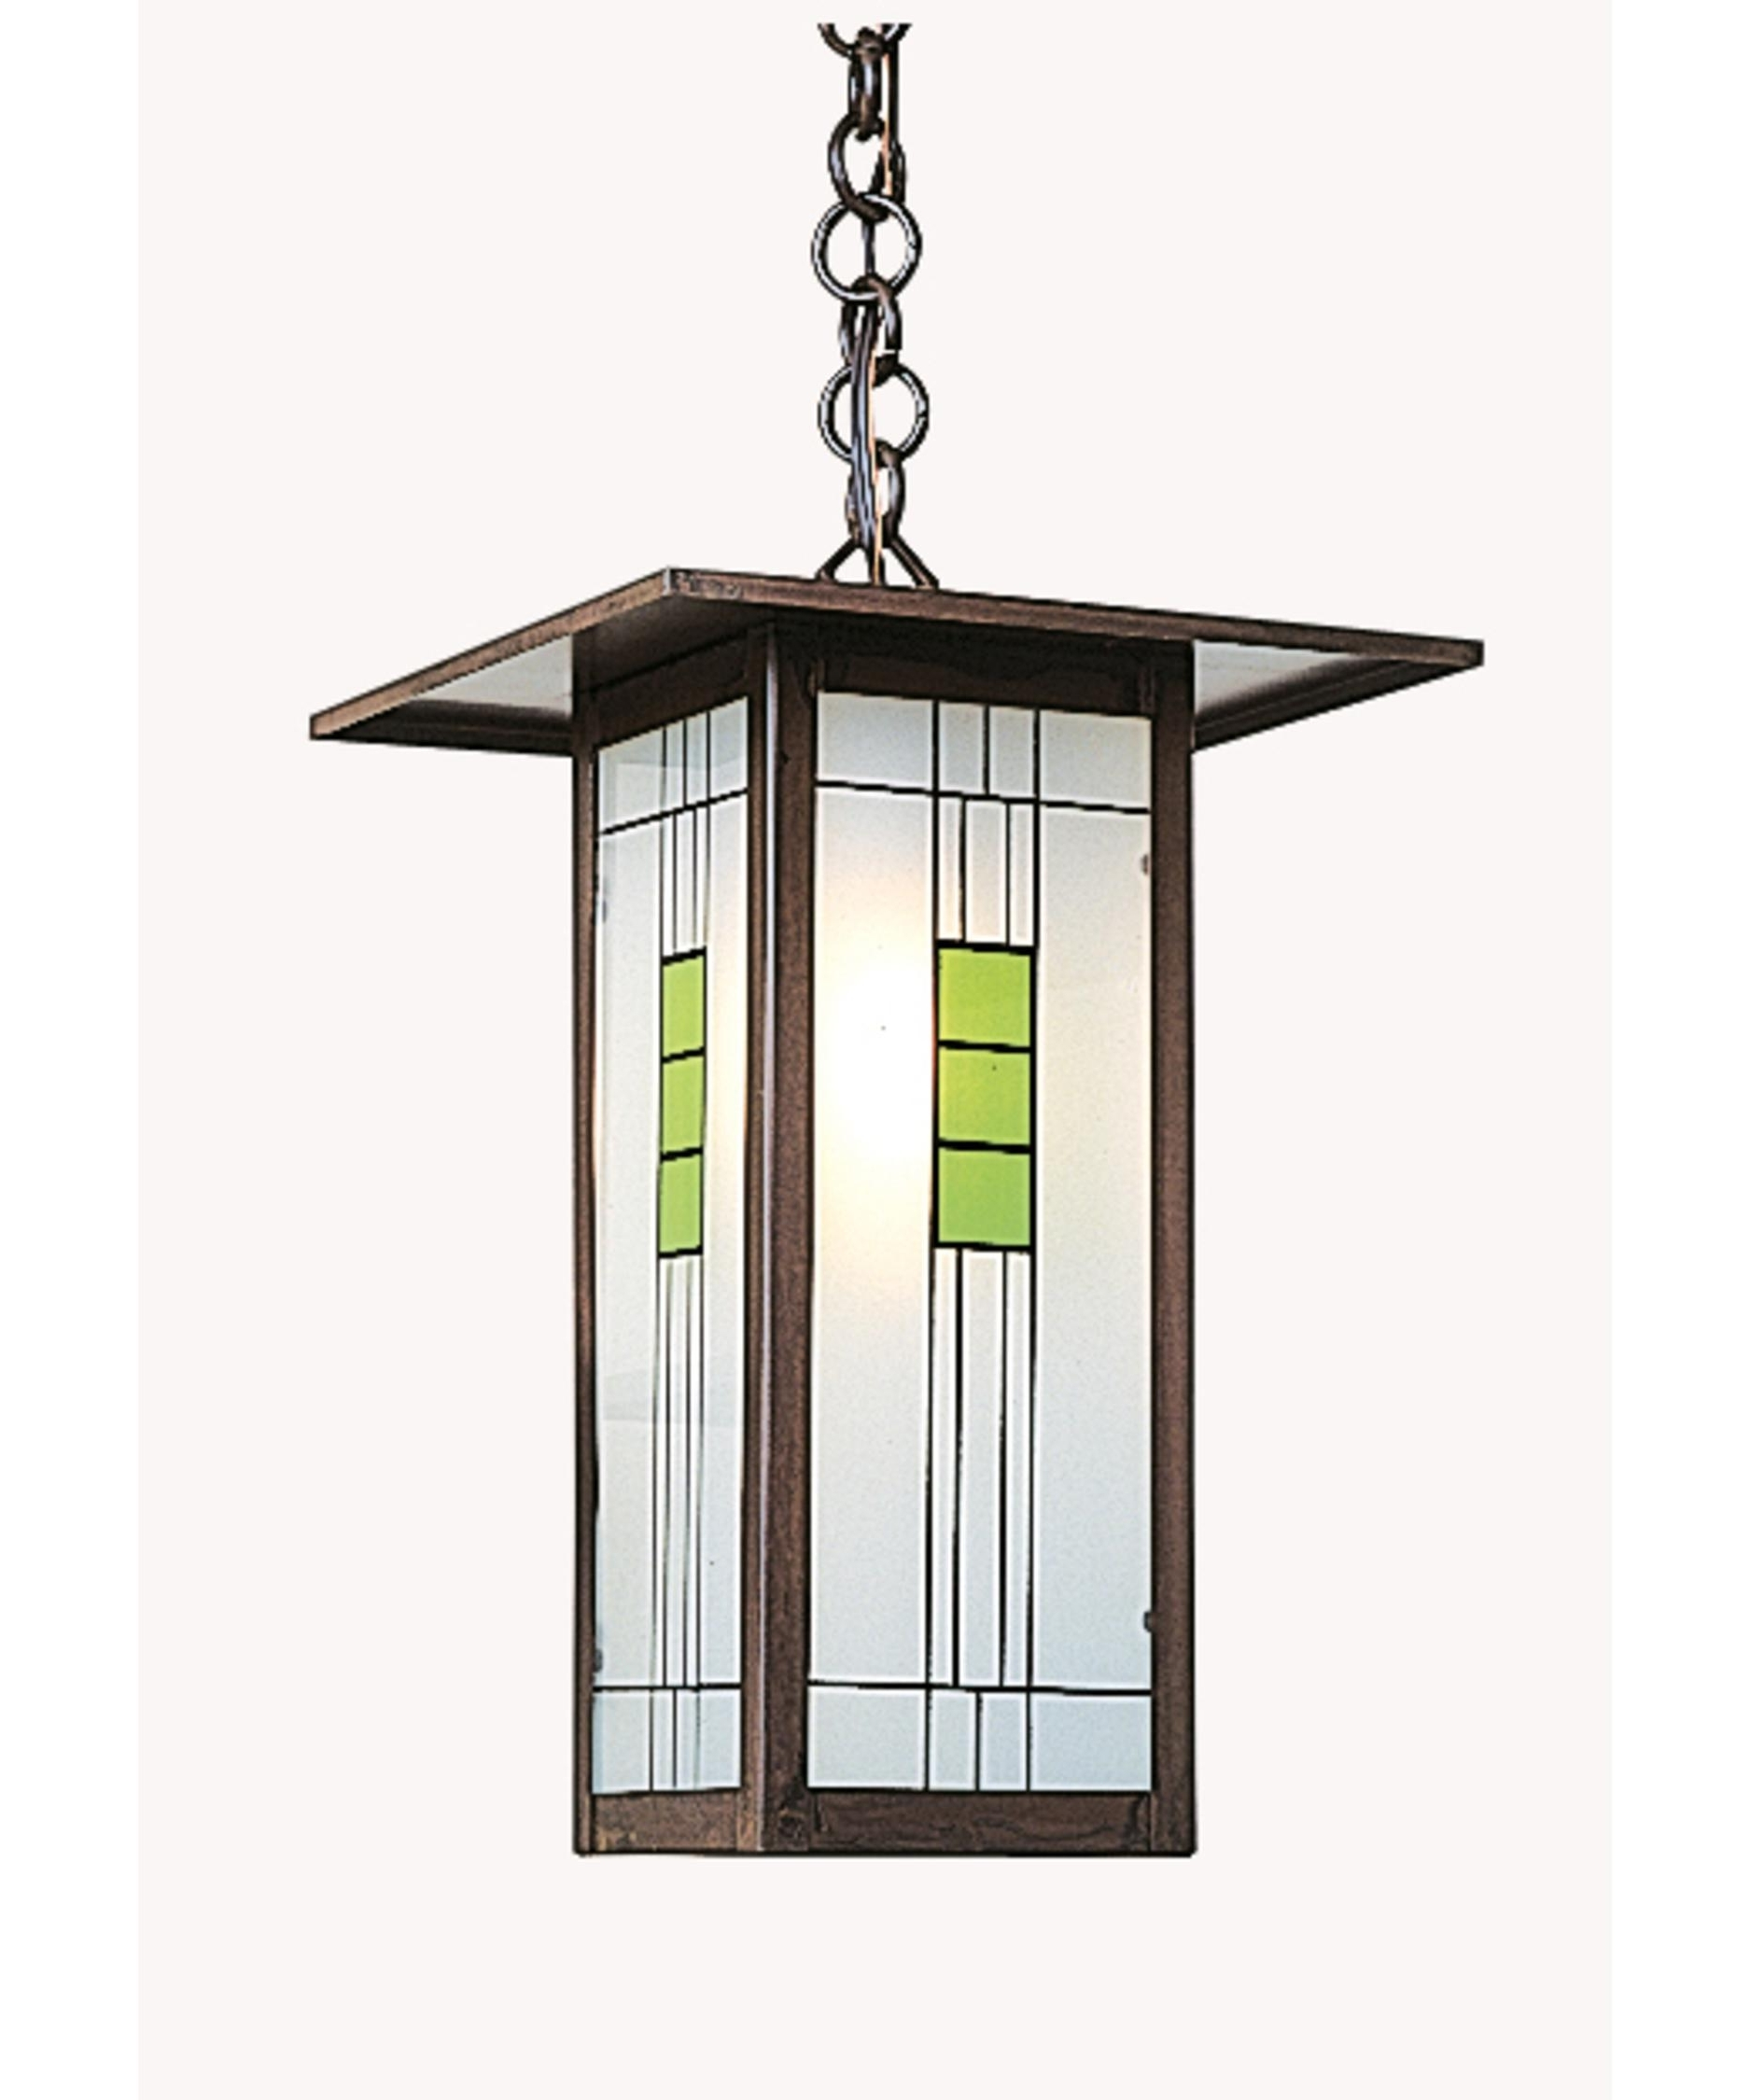 Arroyo Craftsman Fh 9l Franklin 9 Inch Wide 1 Light Outdoor Hanging In Current Craftsman Outdoor Ceiling Lights (View 3 of 20)